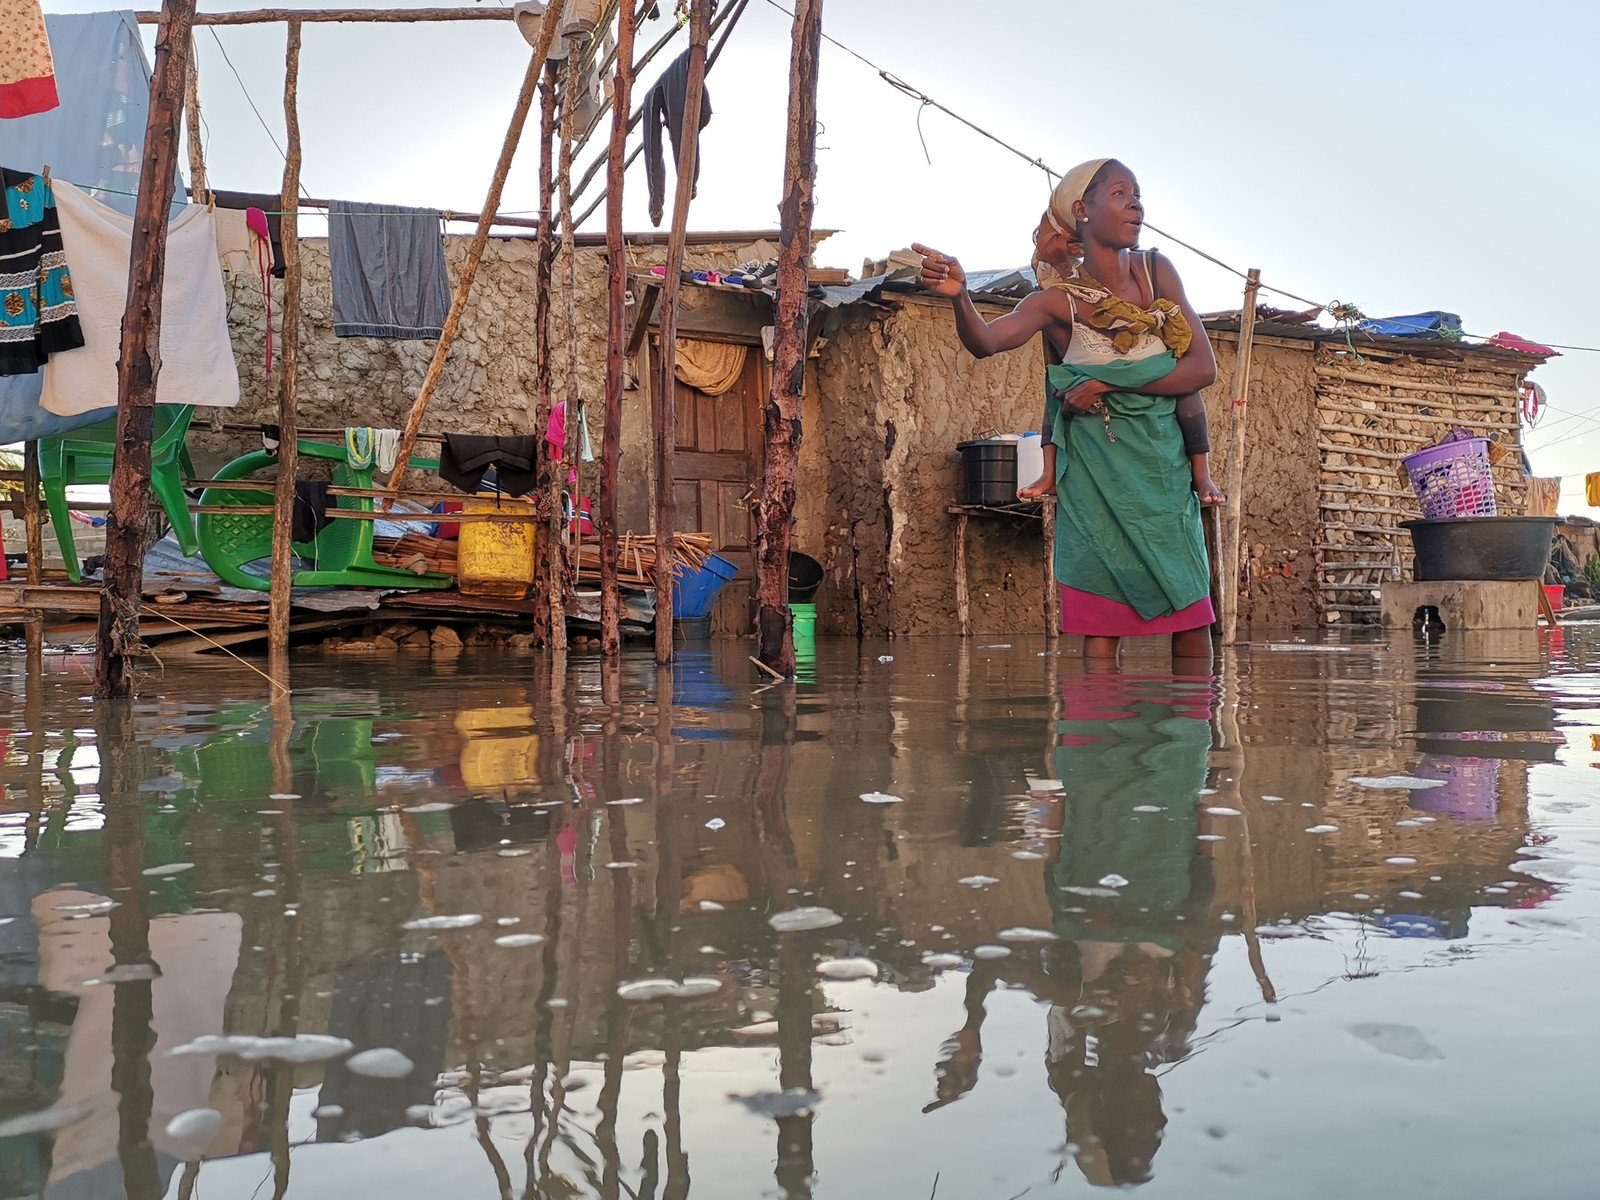 On 14 to 15 March 2019, Cyclone Idai slammed into Mozambique, Malawi and Zimbabwe, devastating the lives of about 2.6 million people across the three countries and claiming the lives of over 1,000. Barely six weeks on, Cyclone Kenneth tore through northern Mozambique. Repeated cyclones in Mozambique have caused US$3.2 billion worth of loss and damage – equivalent to 22 per cent of the country's GDP or approximately 50 per cent of its national budget. (Photo: Sergio Zimba / Oxfam)